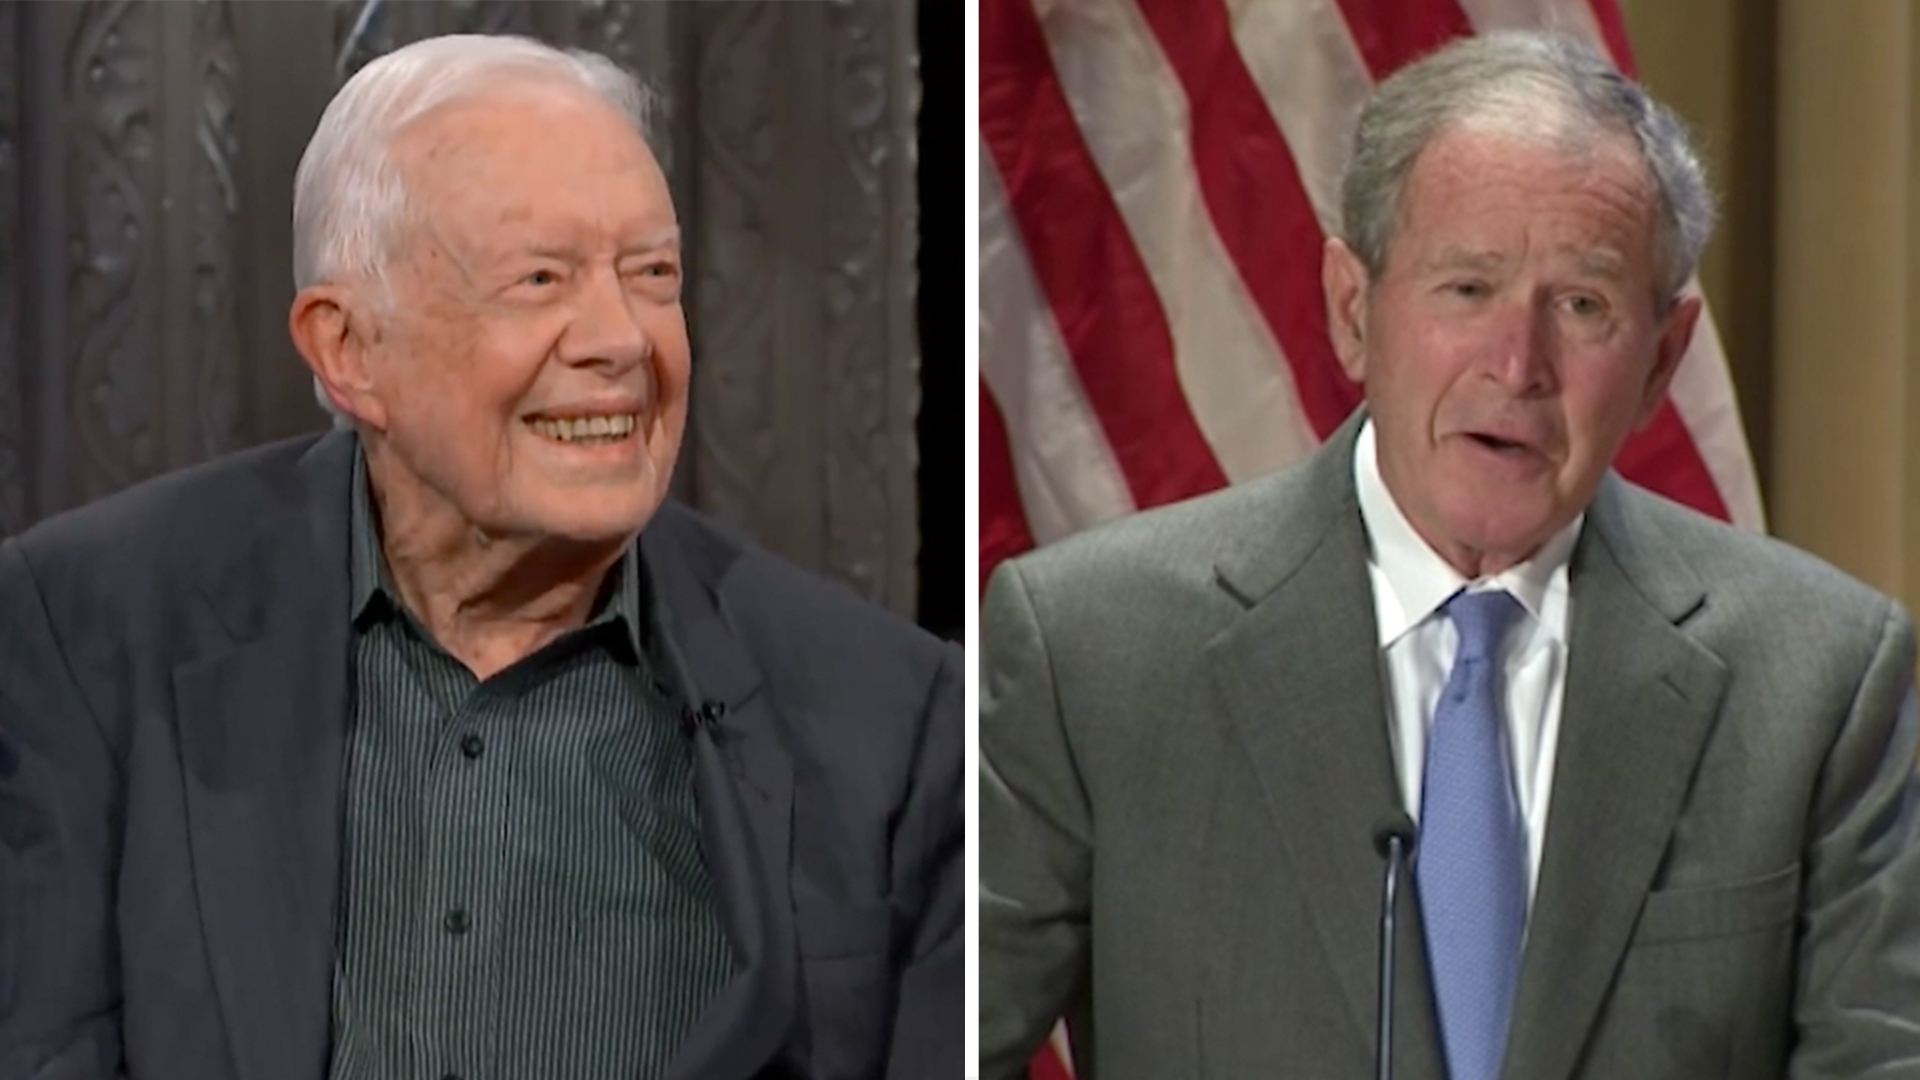 President Jimmy Carter Now - Jimmy Carter Now 88 On Aging ...